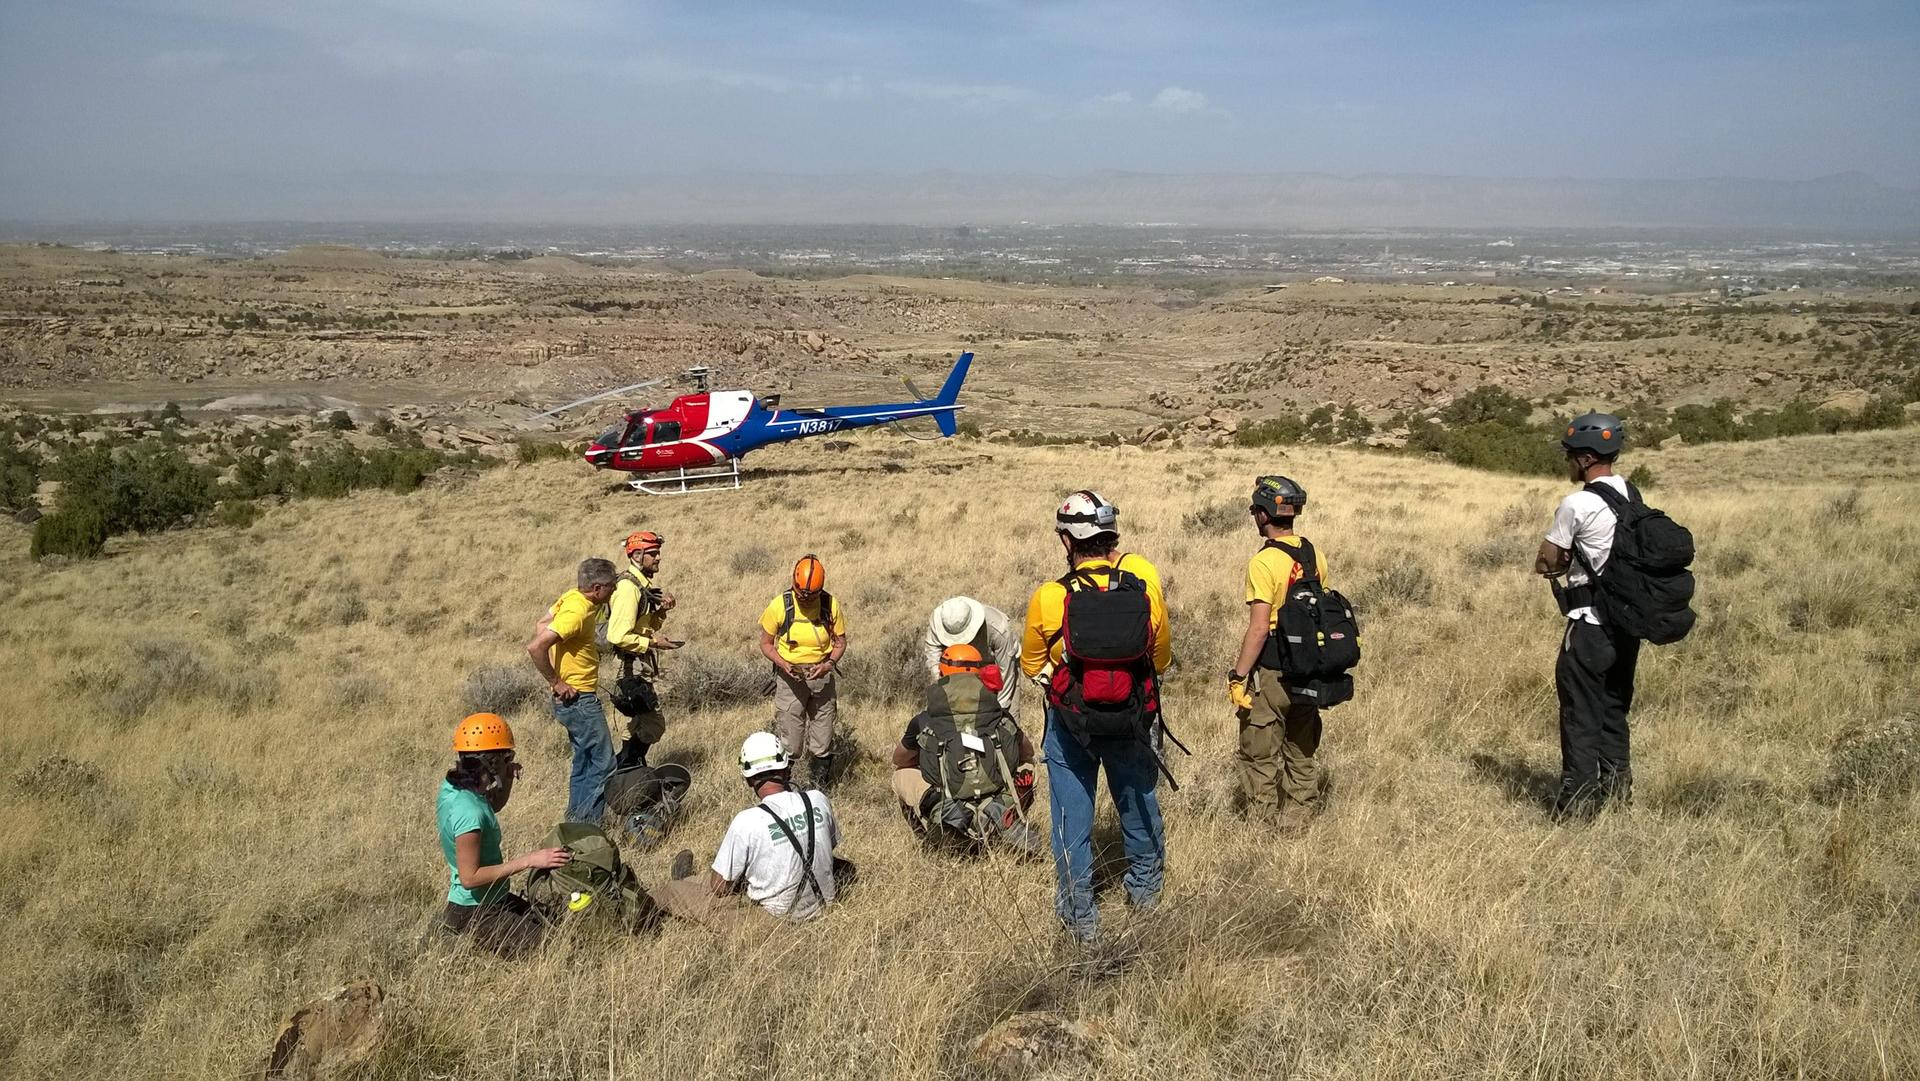 Mesa County Search and Rescue at Horsethief Bench